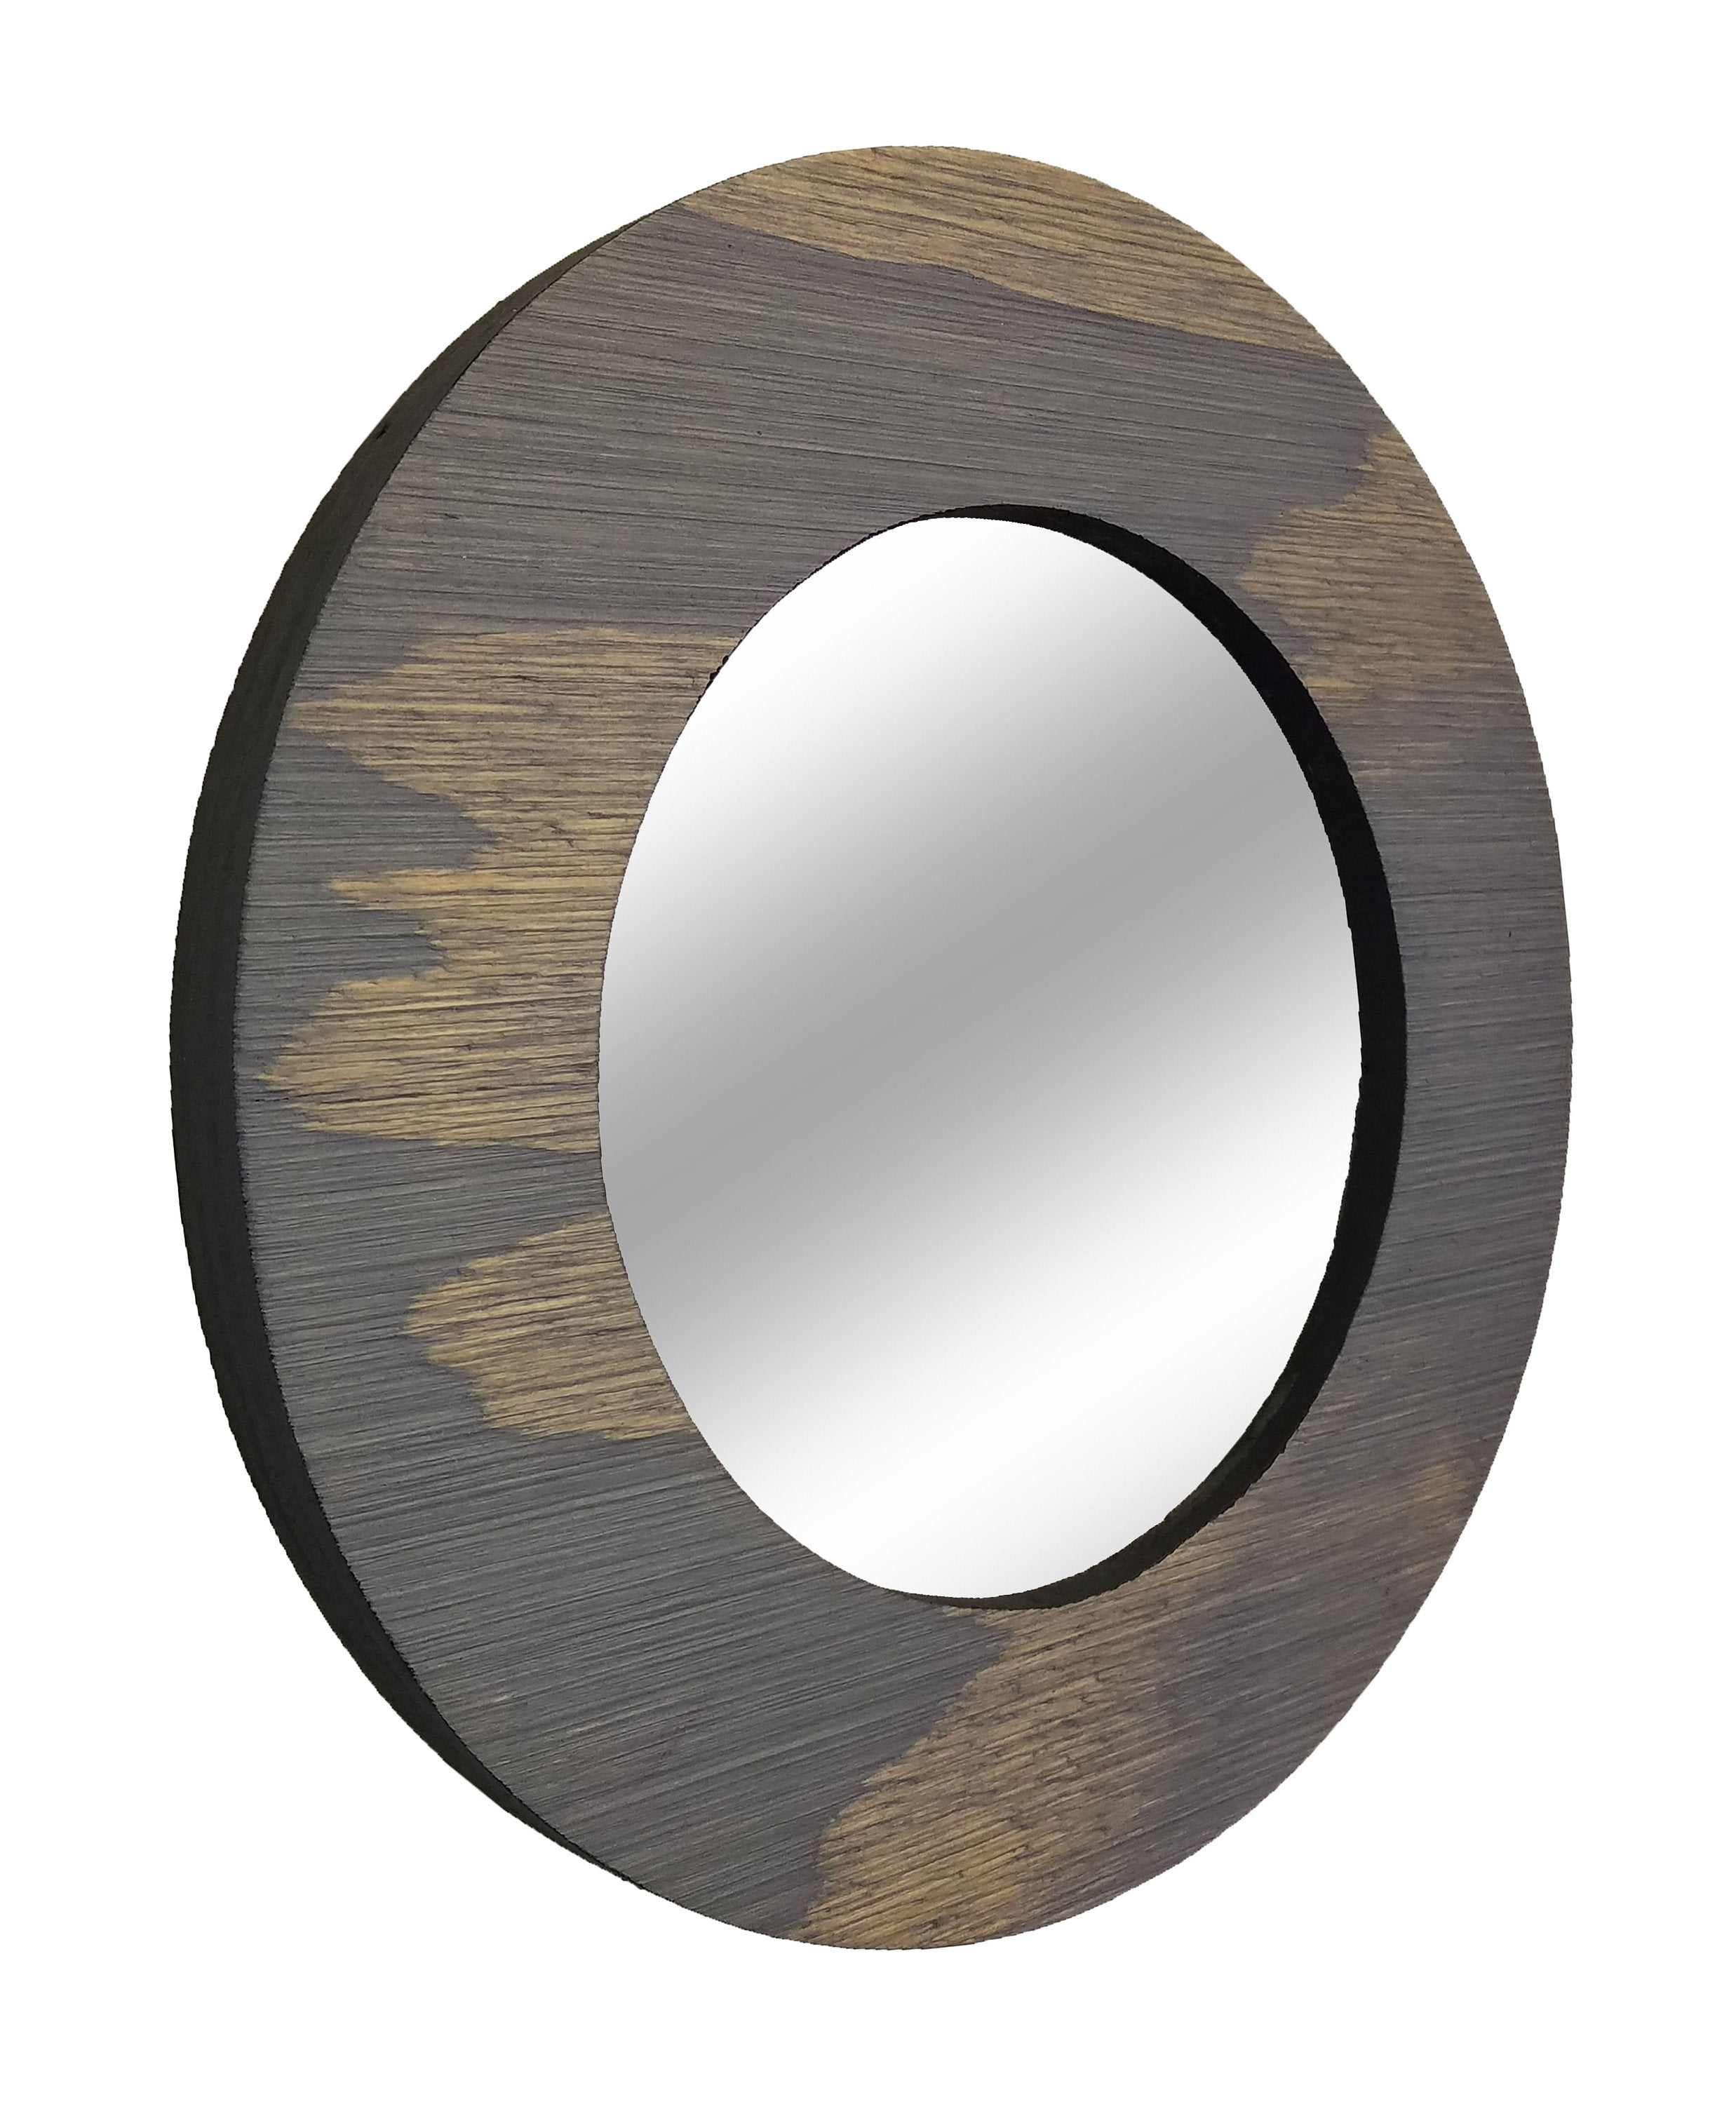 Wood Curve Round Decorative Wall Mirror Stain Samples - Renewed Decor & Storage